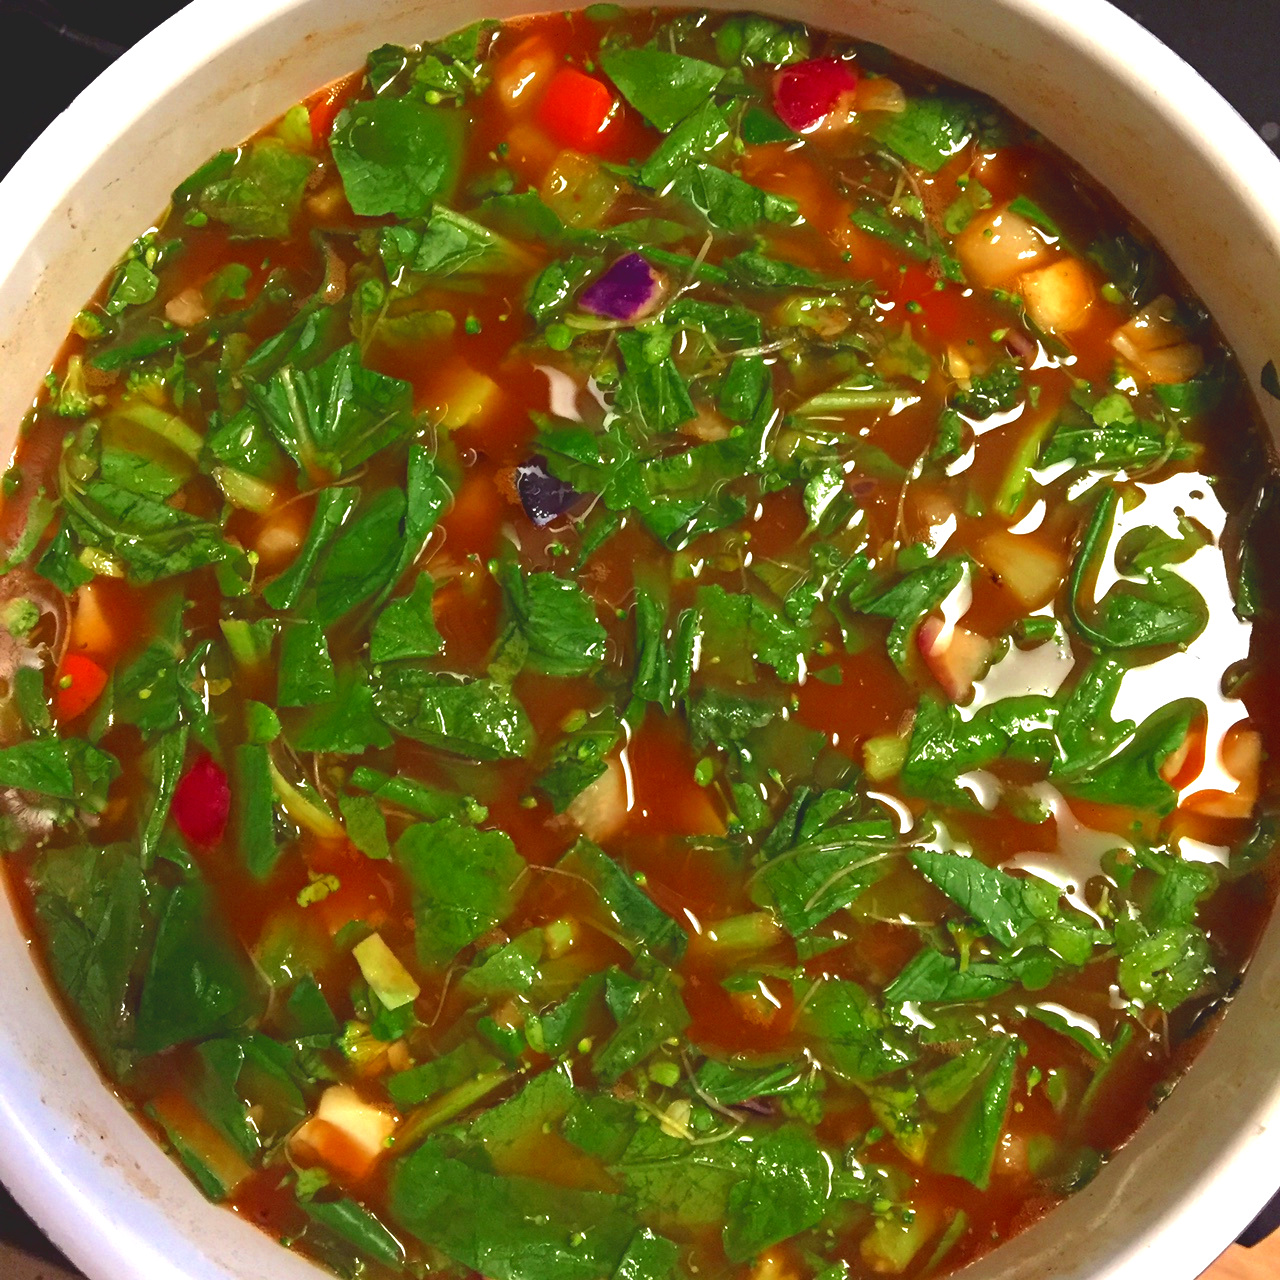 What's-in-Your-Fridge Soup - Hearty or Light - Your Choice!